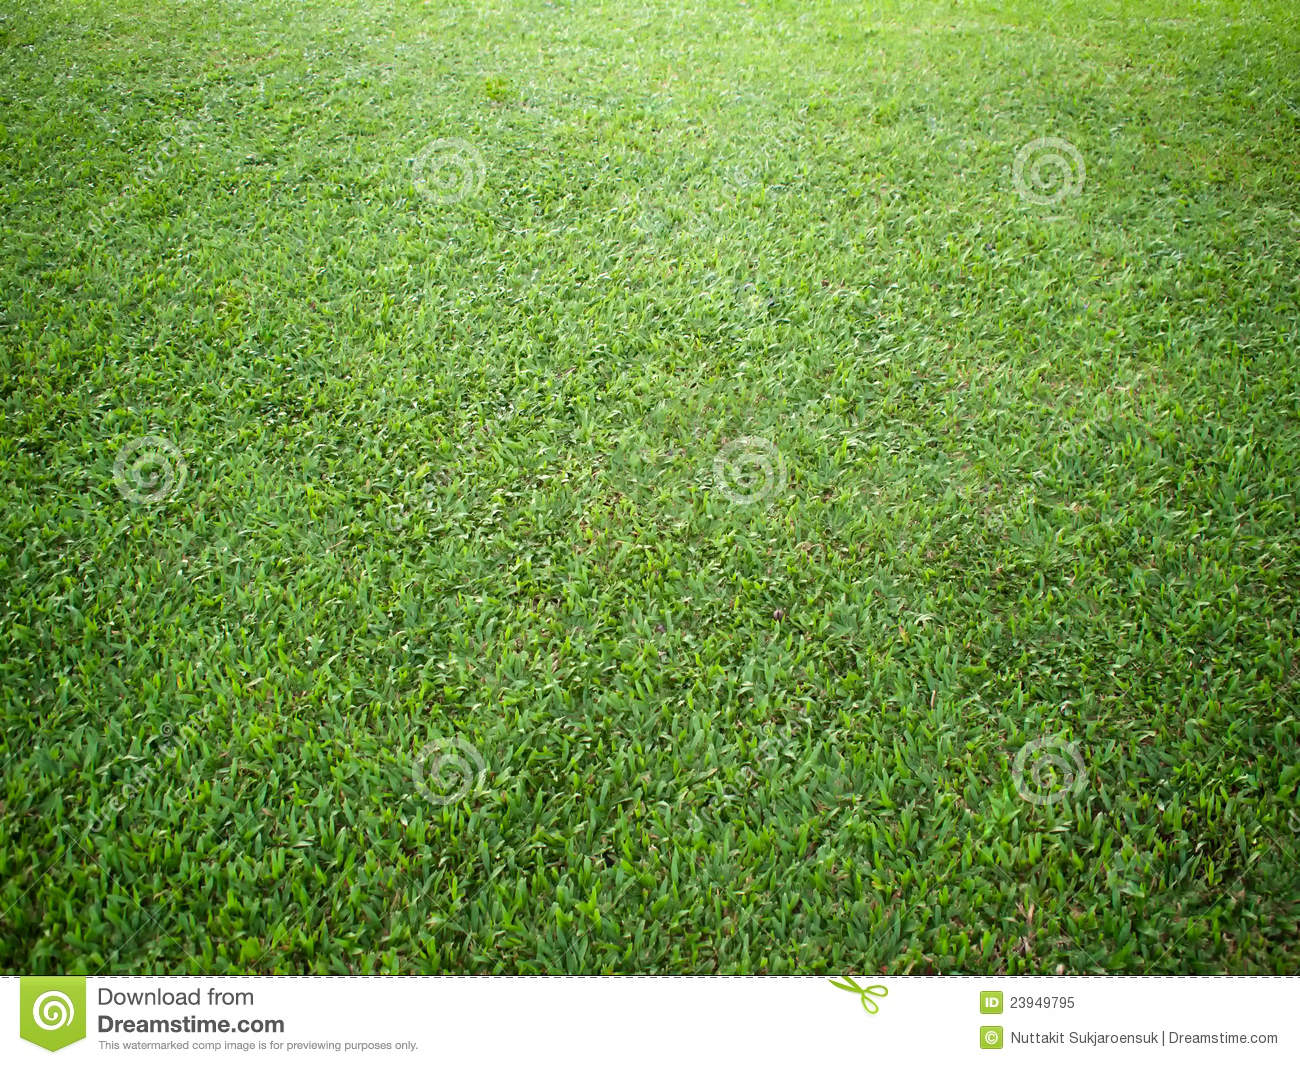 Perspective of grass on ground